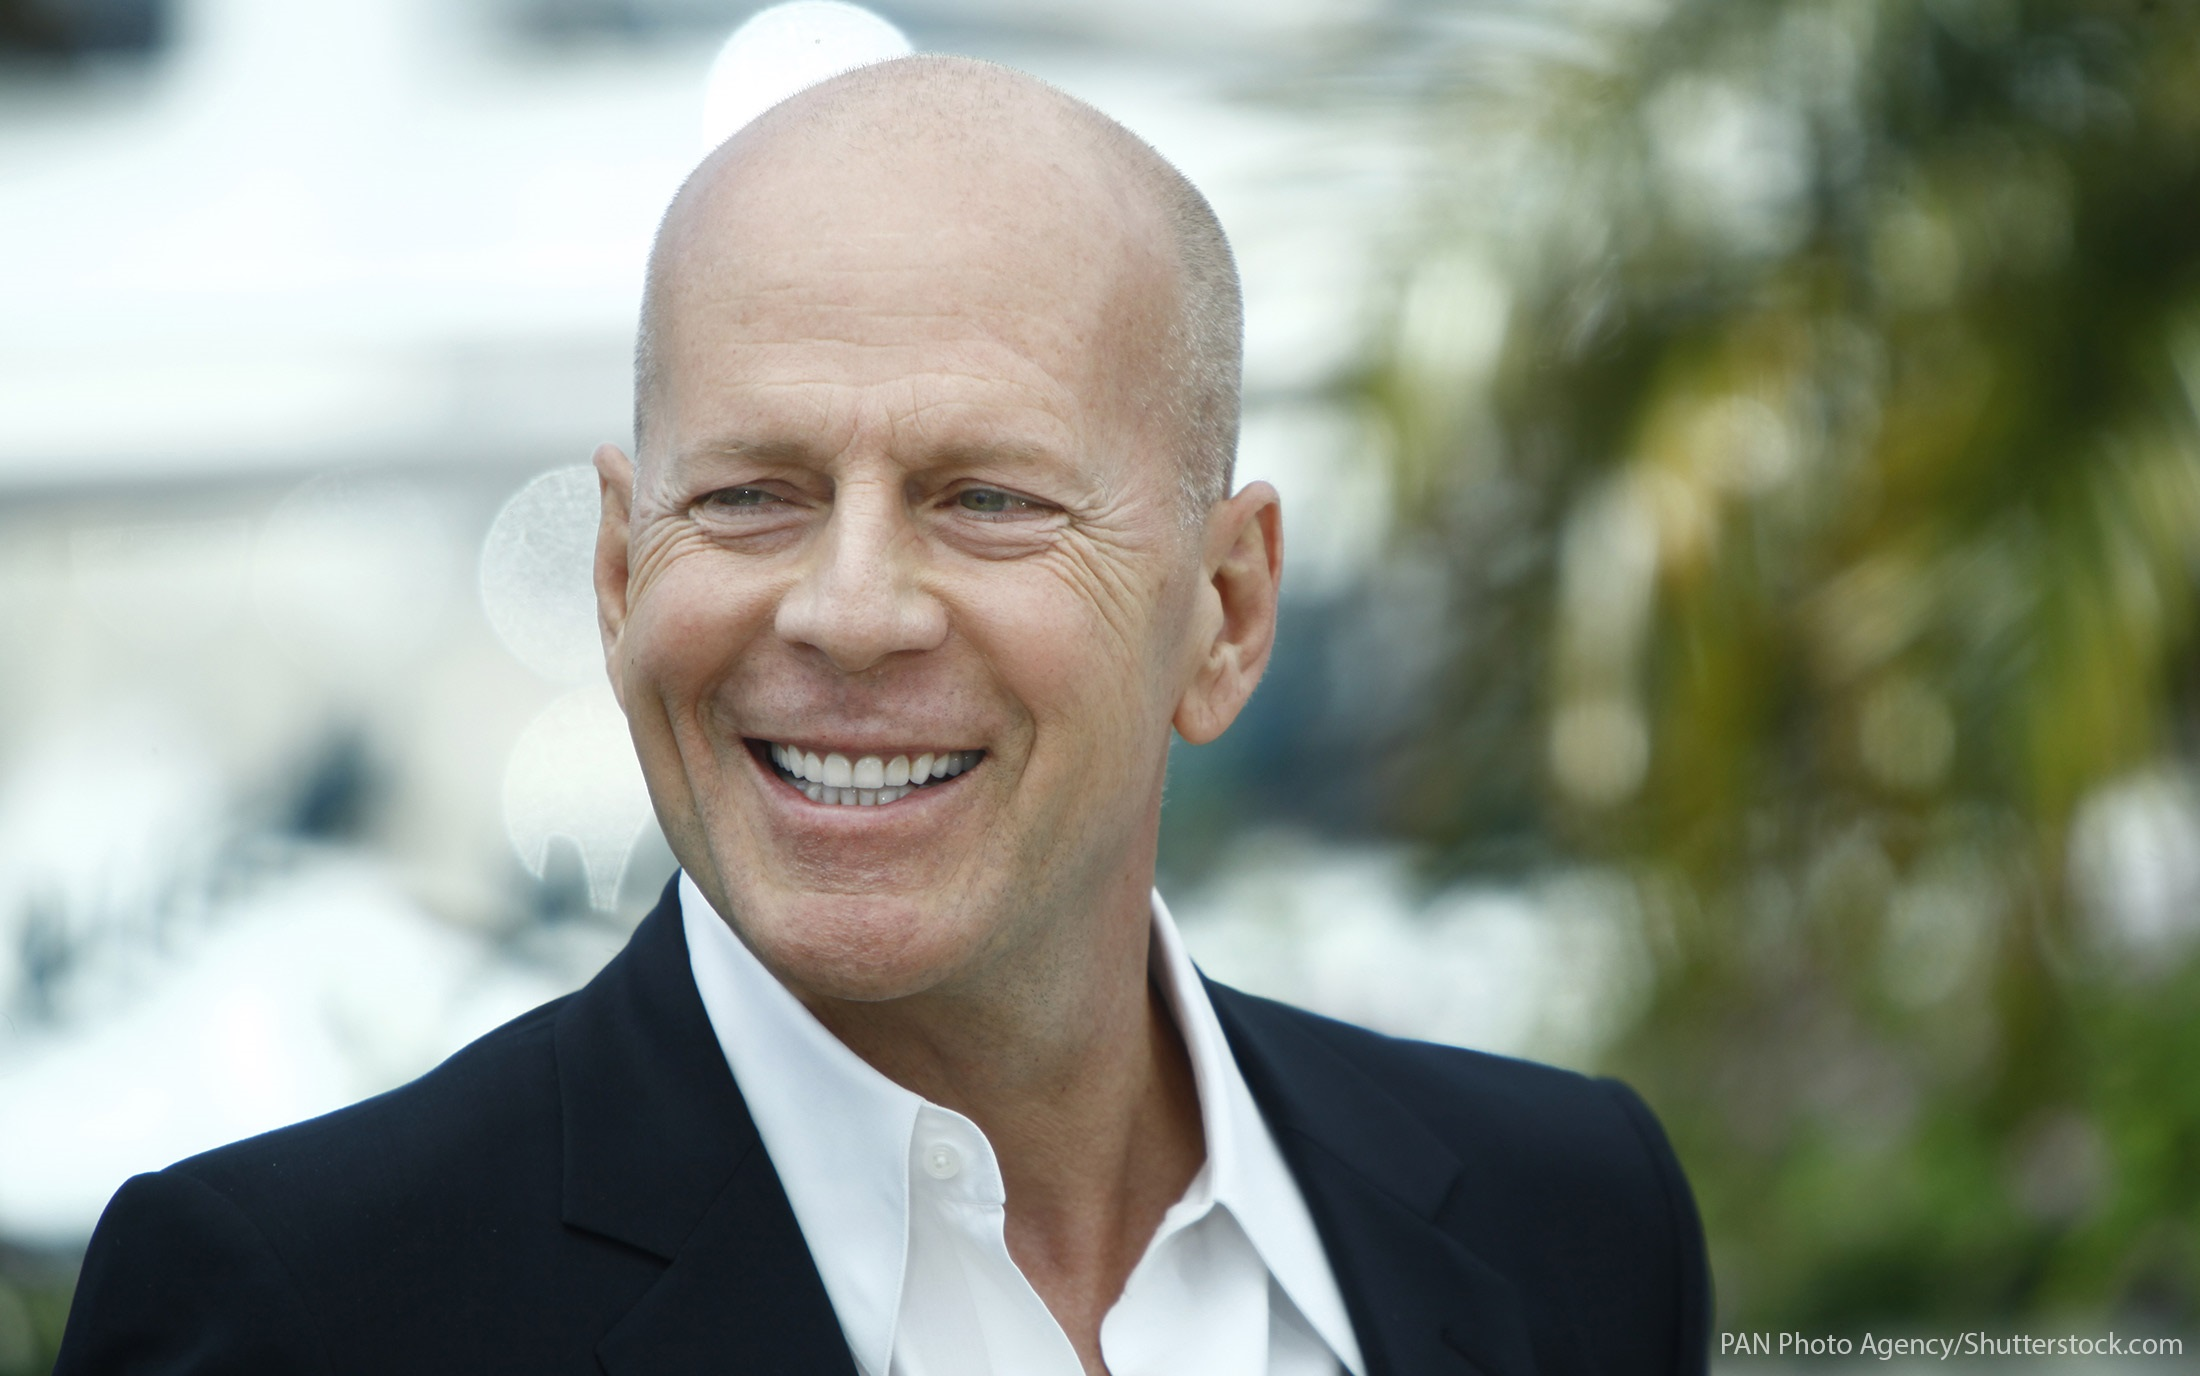 Bruce Willis' Net Worth, Businesses and Movies, From 'Die Hard' t...